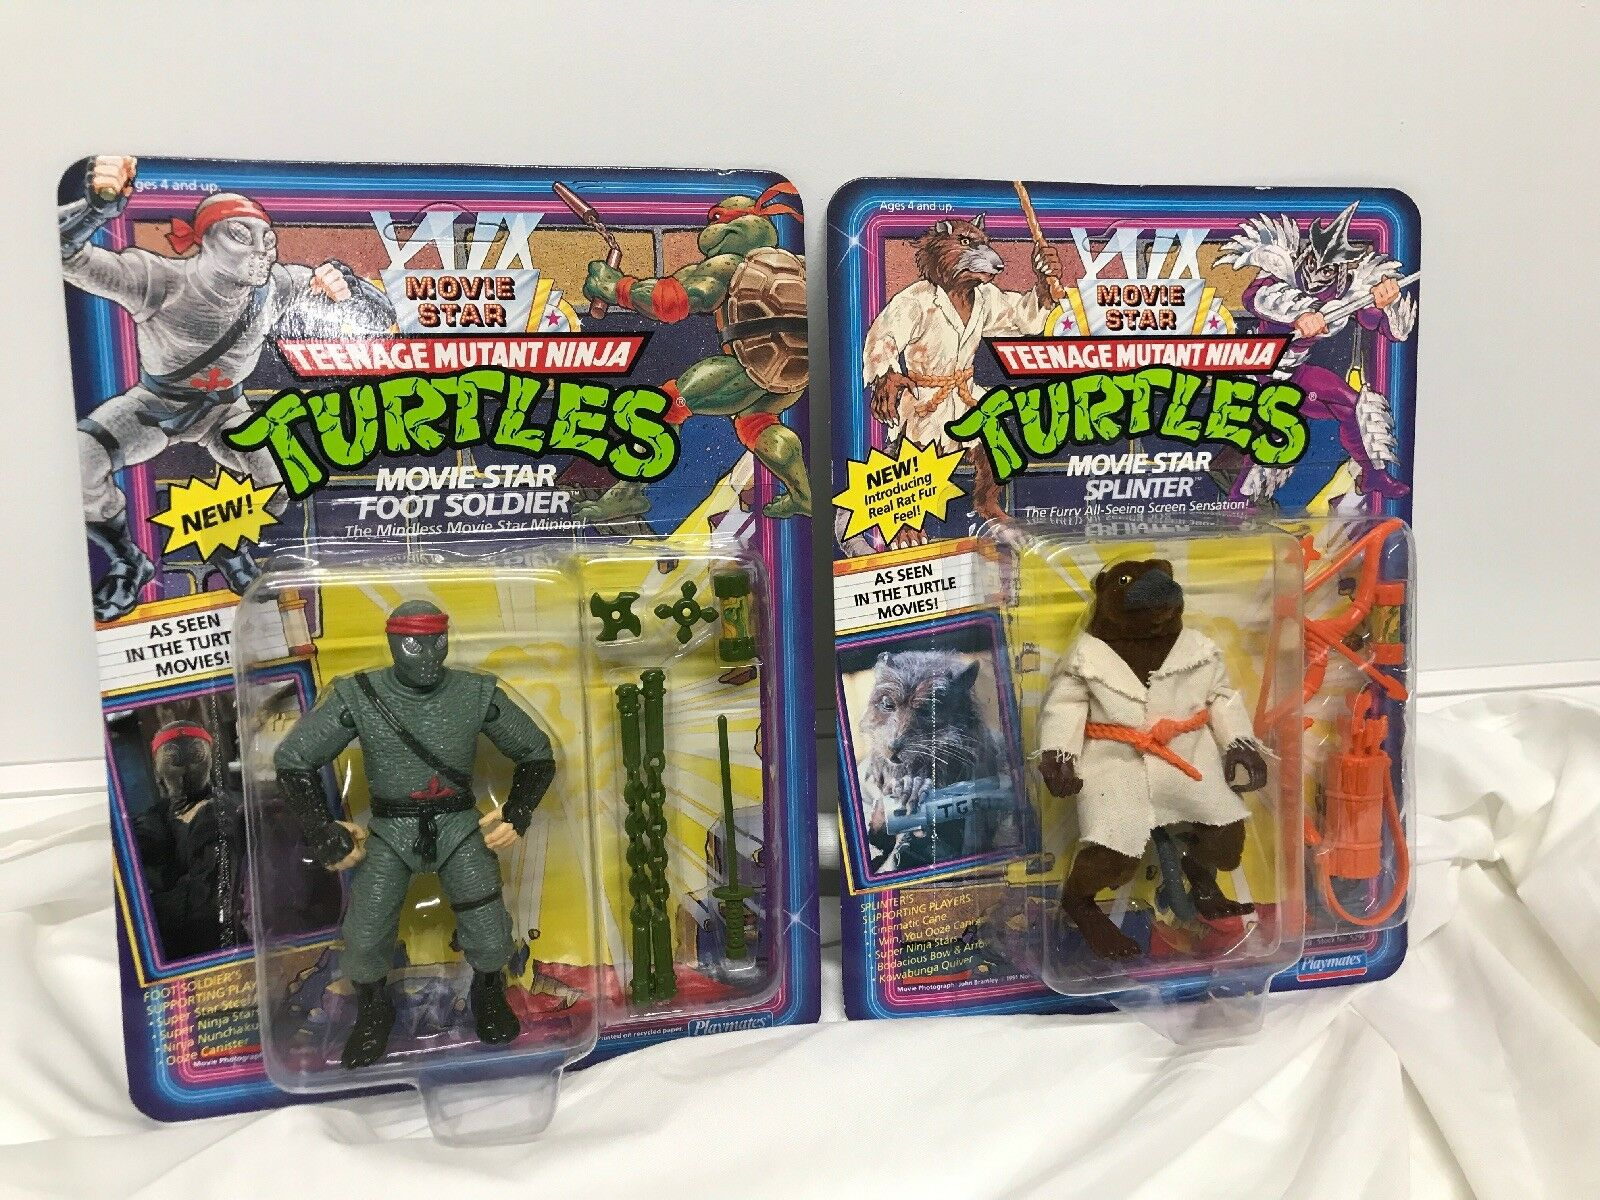 Vintage Playmates 1992 Movie Star TMNT Foot Soldier & Splinter Playmates